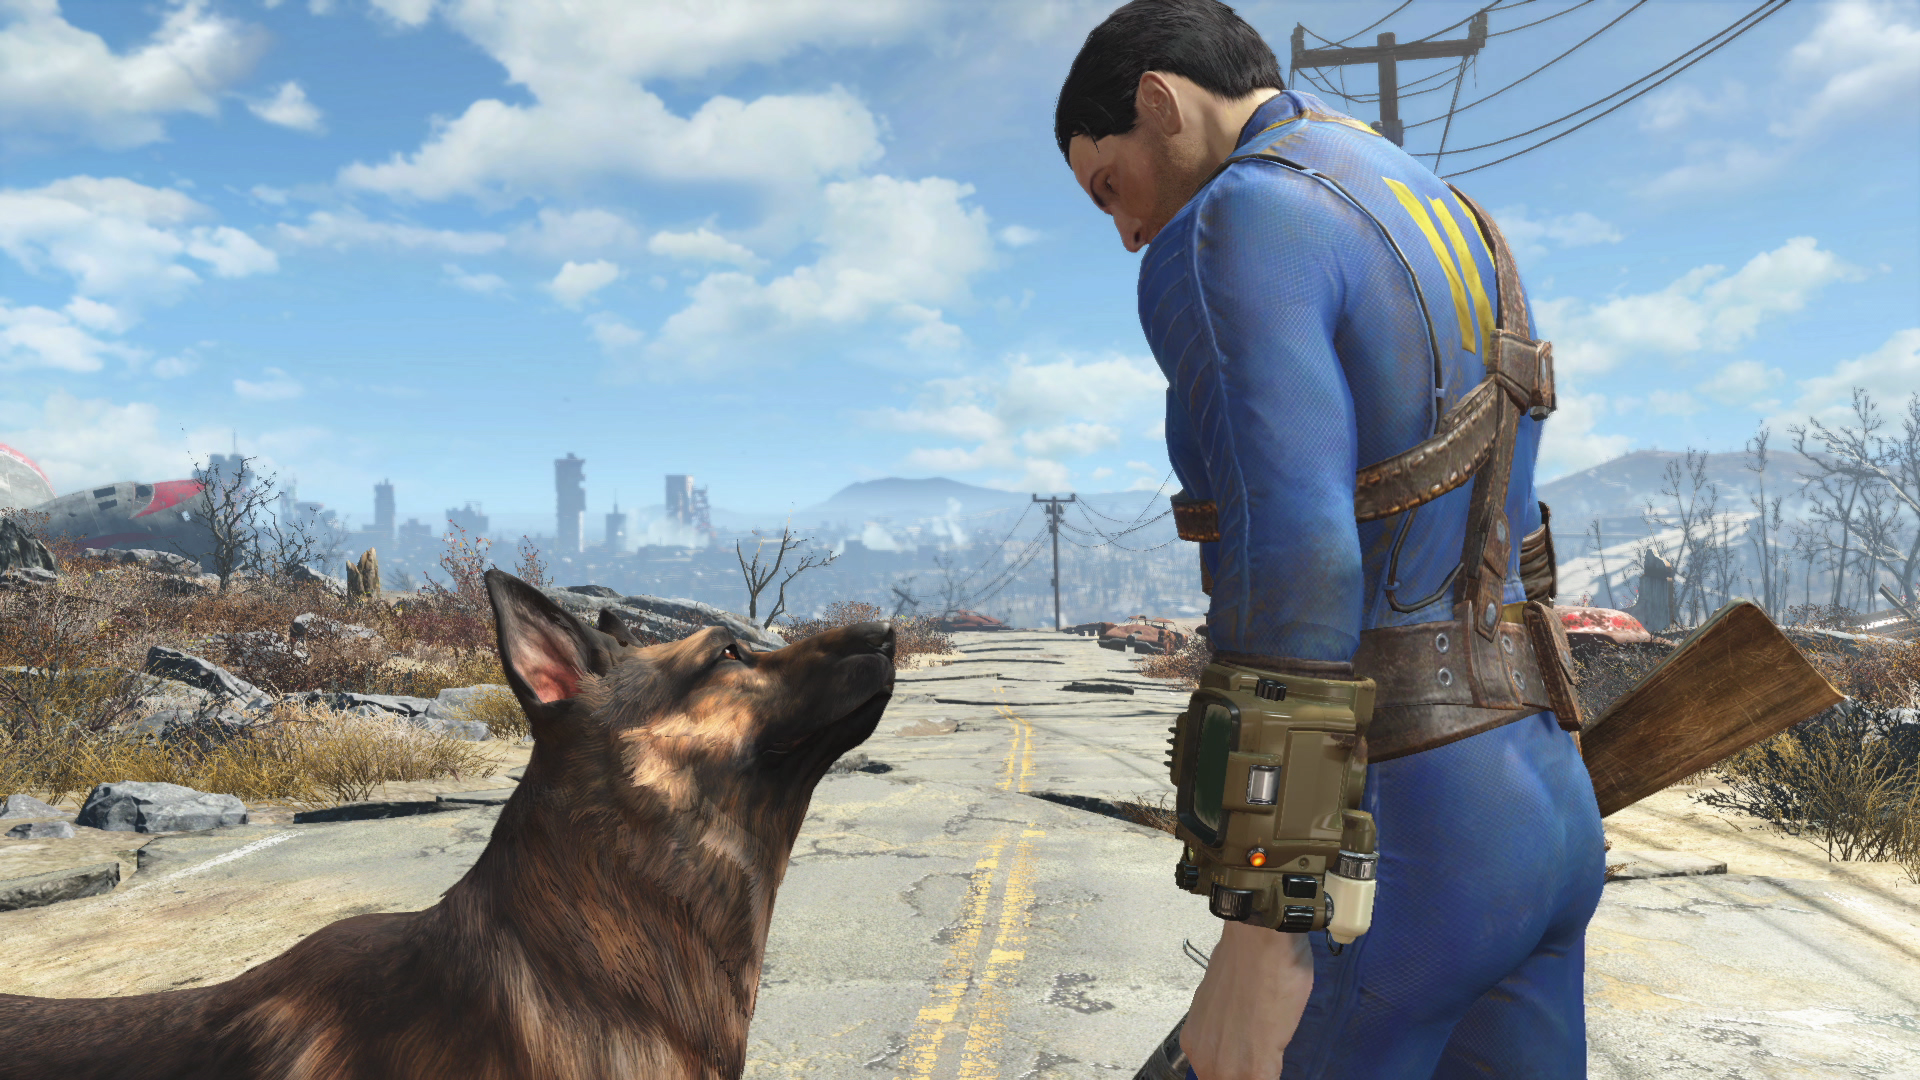 Fallout 4 is coming out this year on PS4, XboxOne and PC